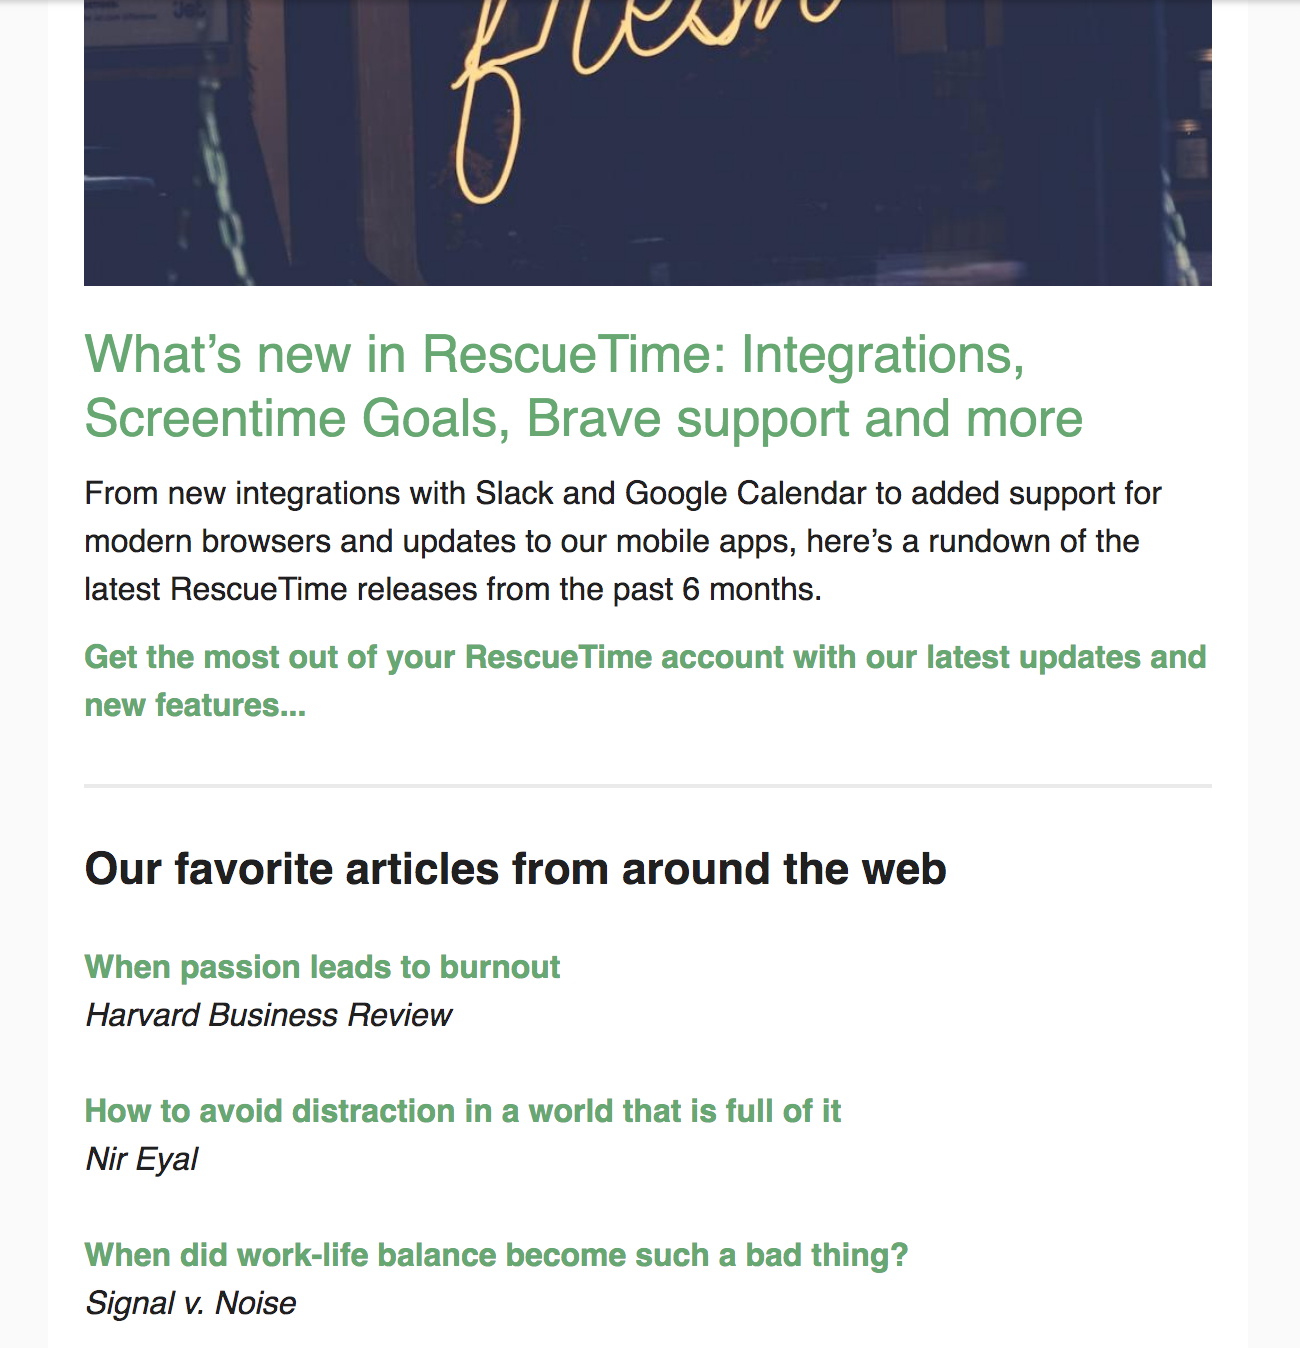 curated content in Rescuretime Newsletter